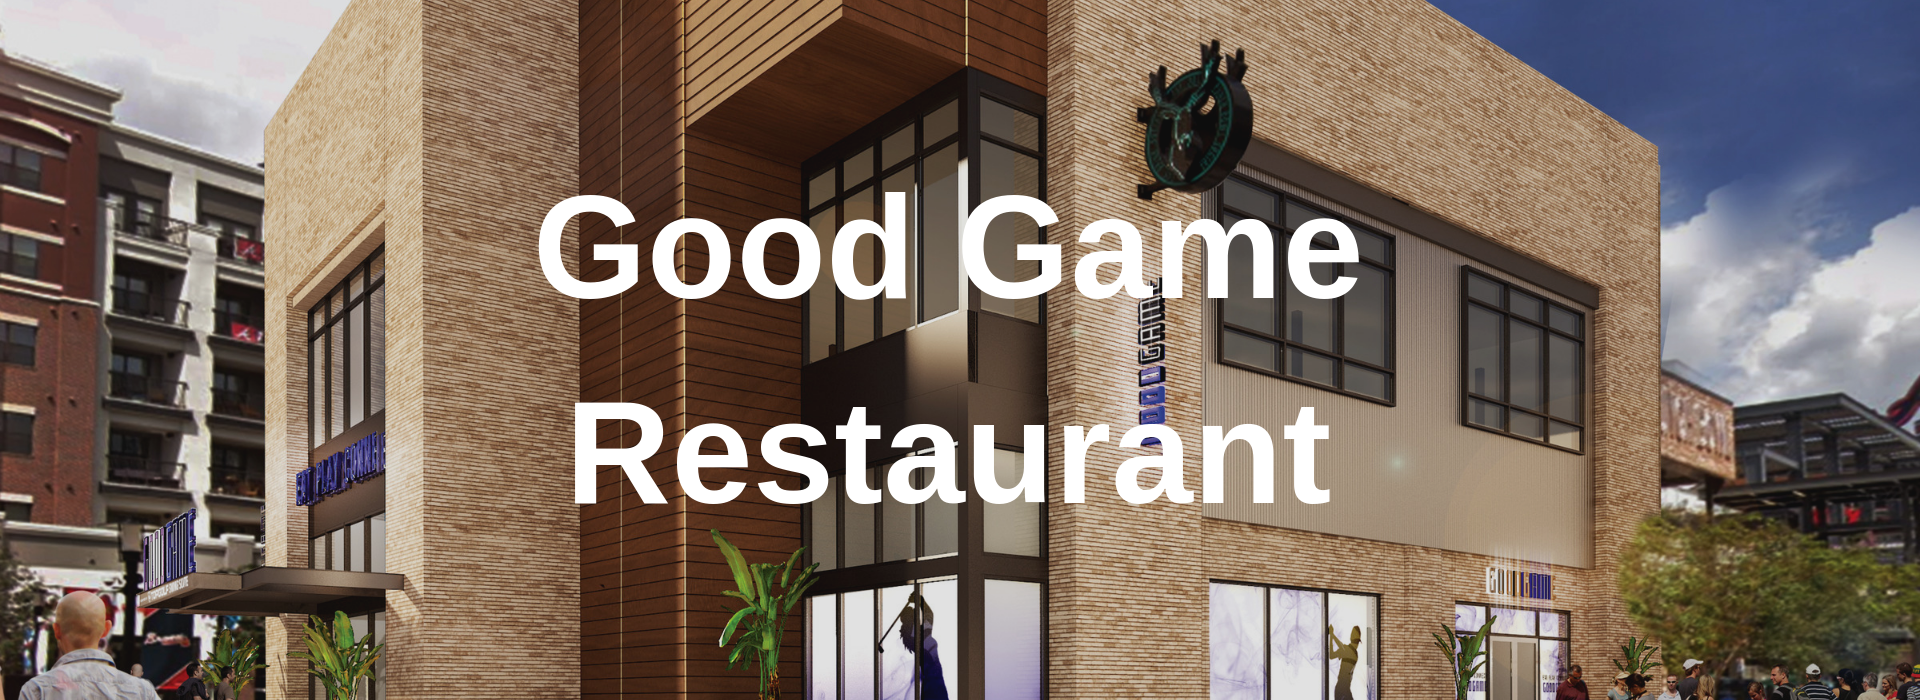 Good Game Restaurant Icon